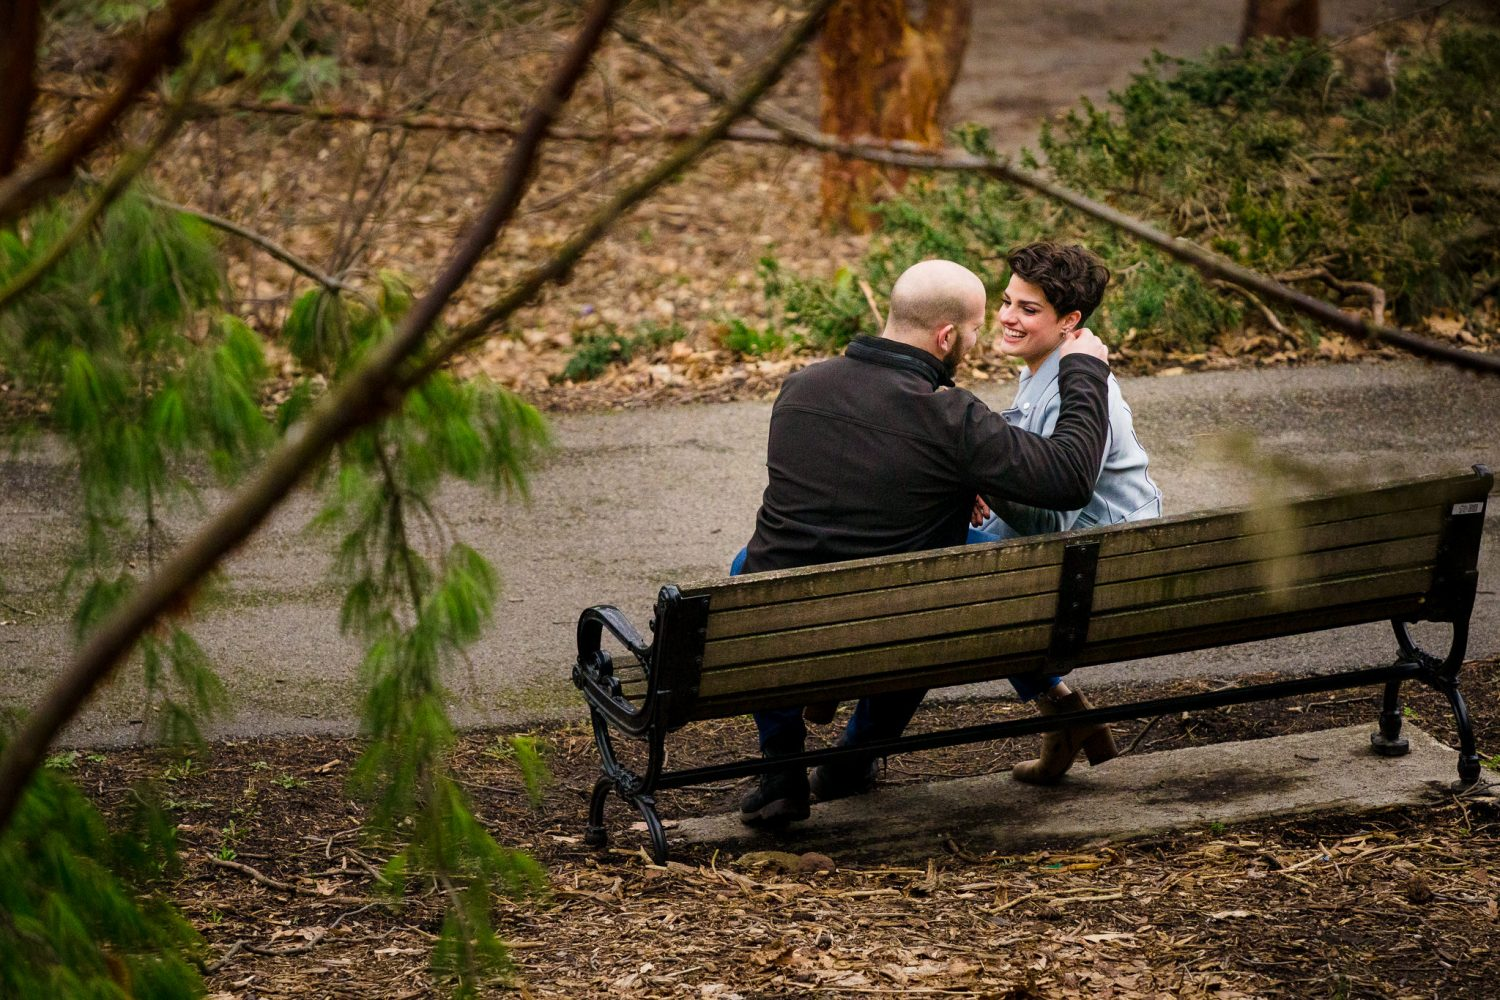 A newly engaged couple sit on a bench in highland park.